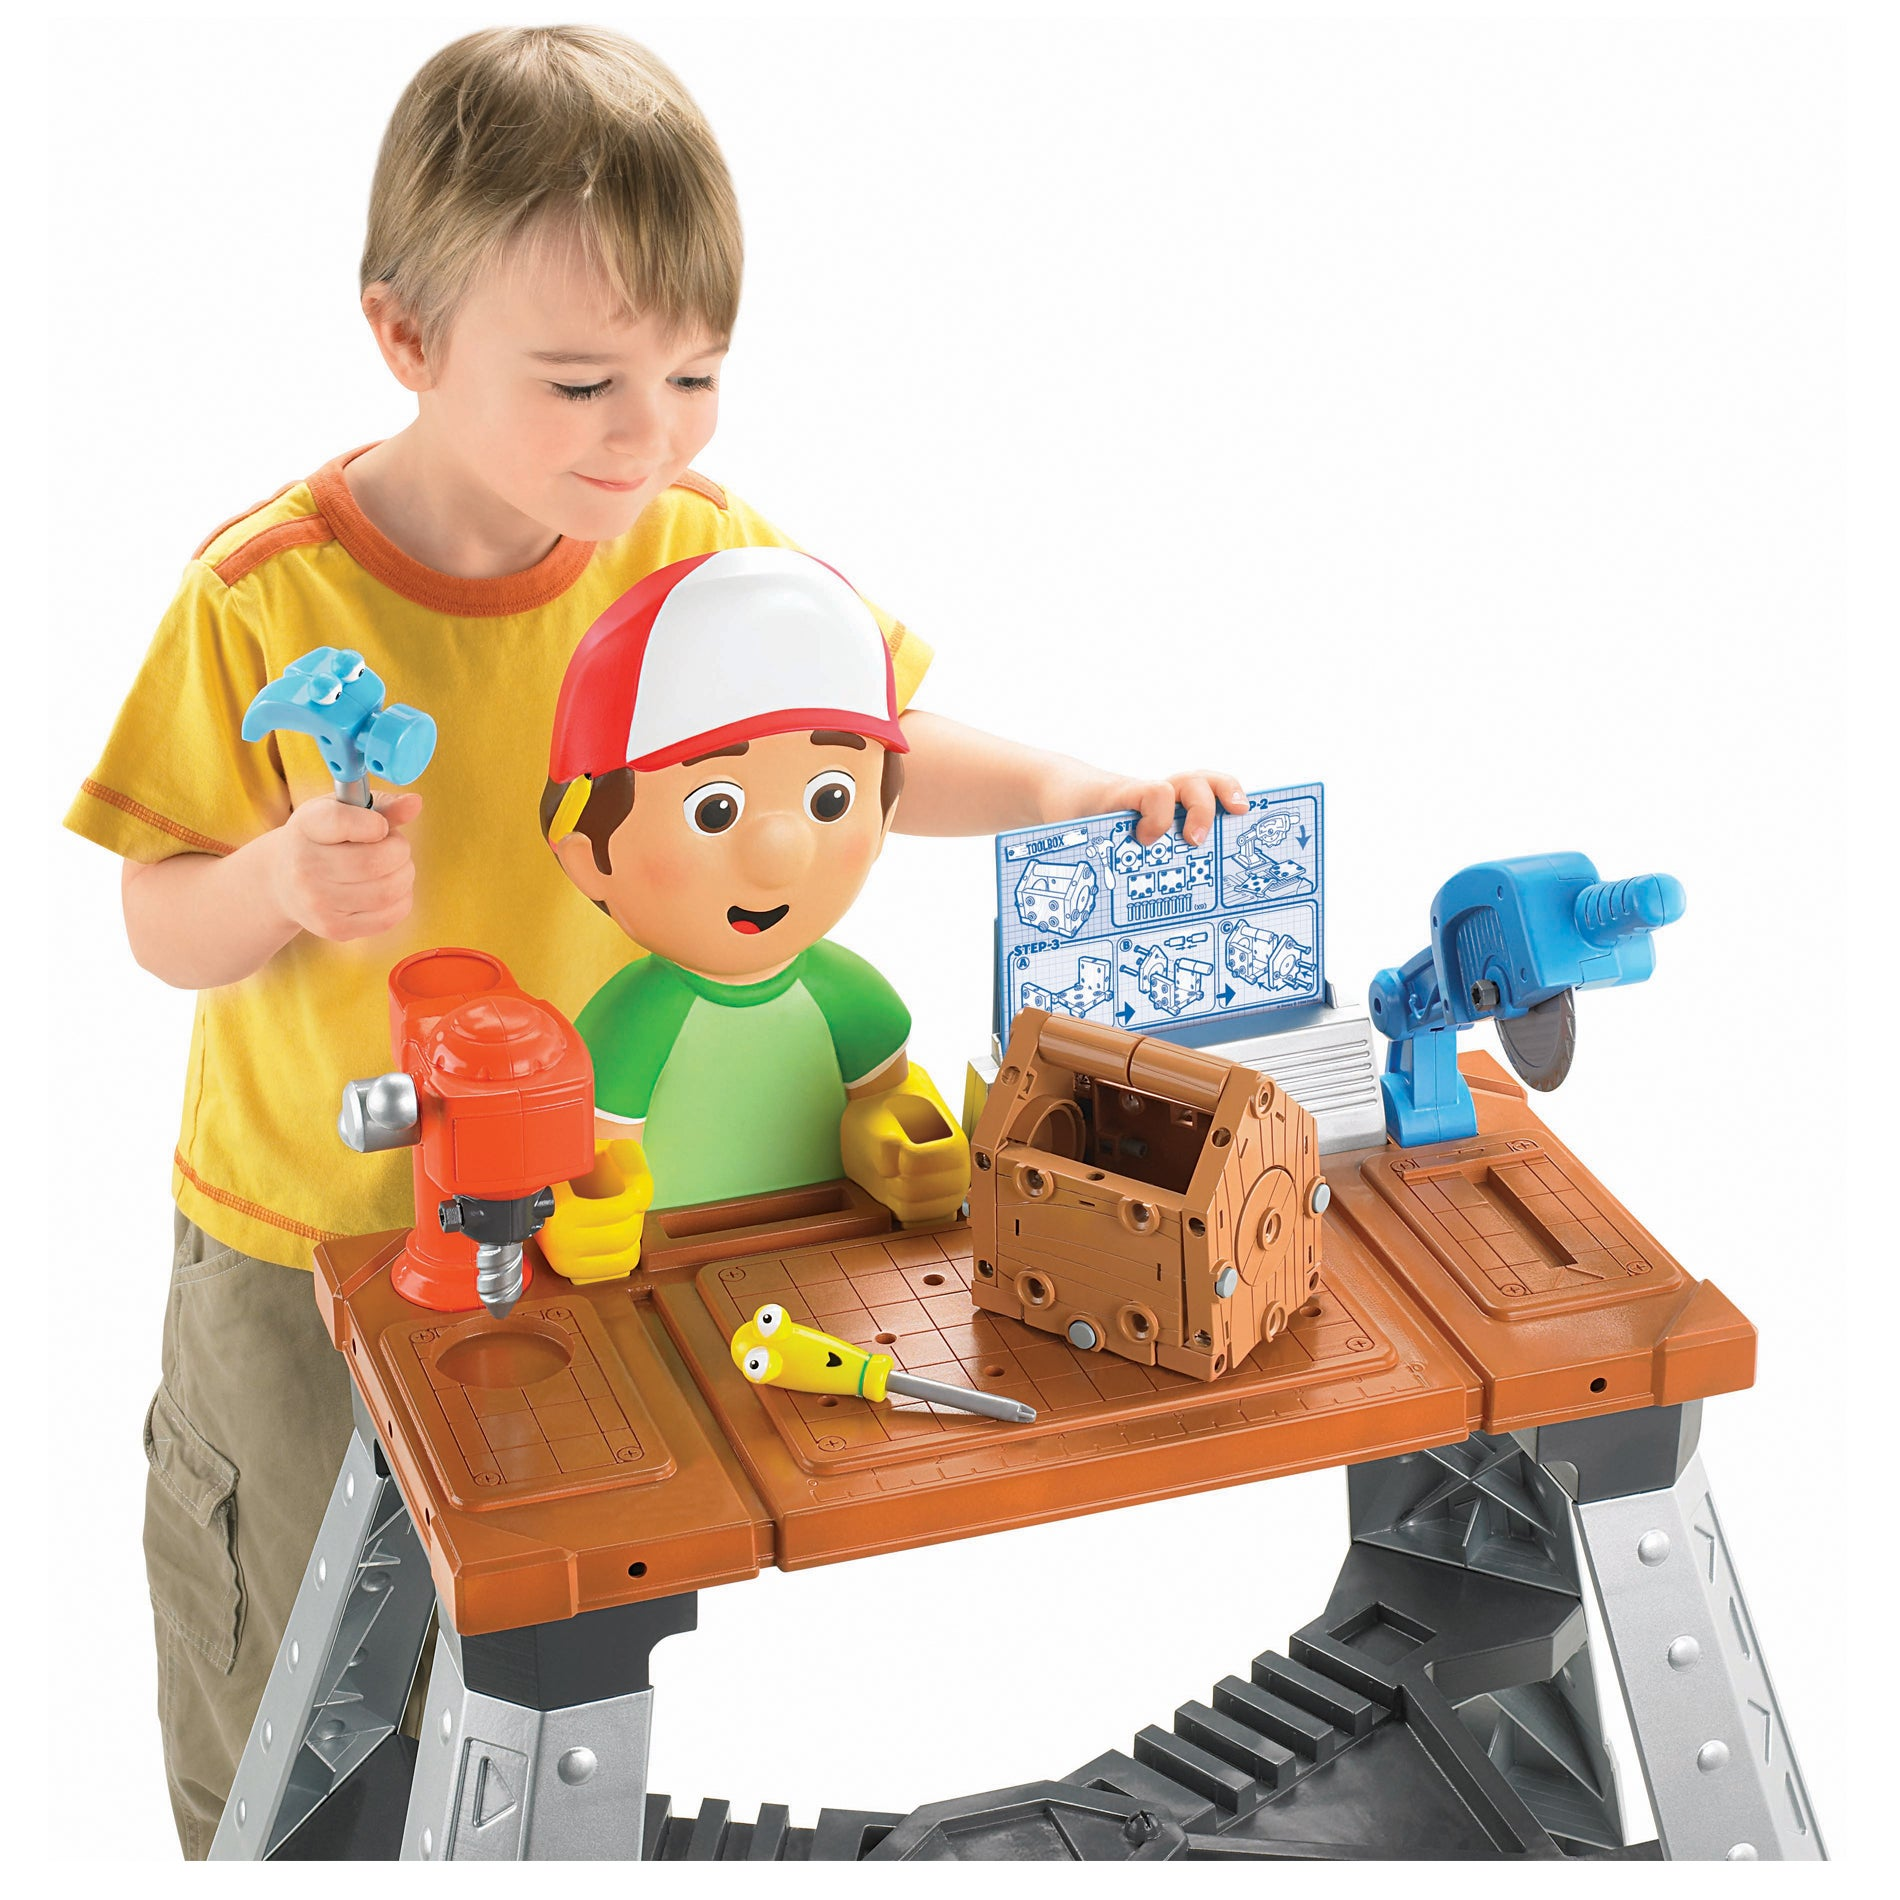 Fisher Price Handy Manny's Repair Shop Play Set